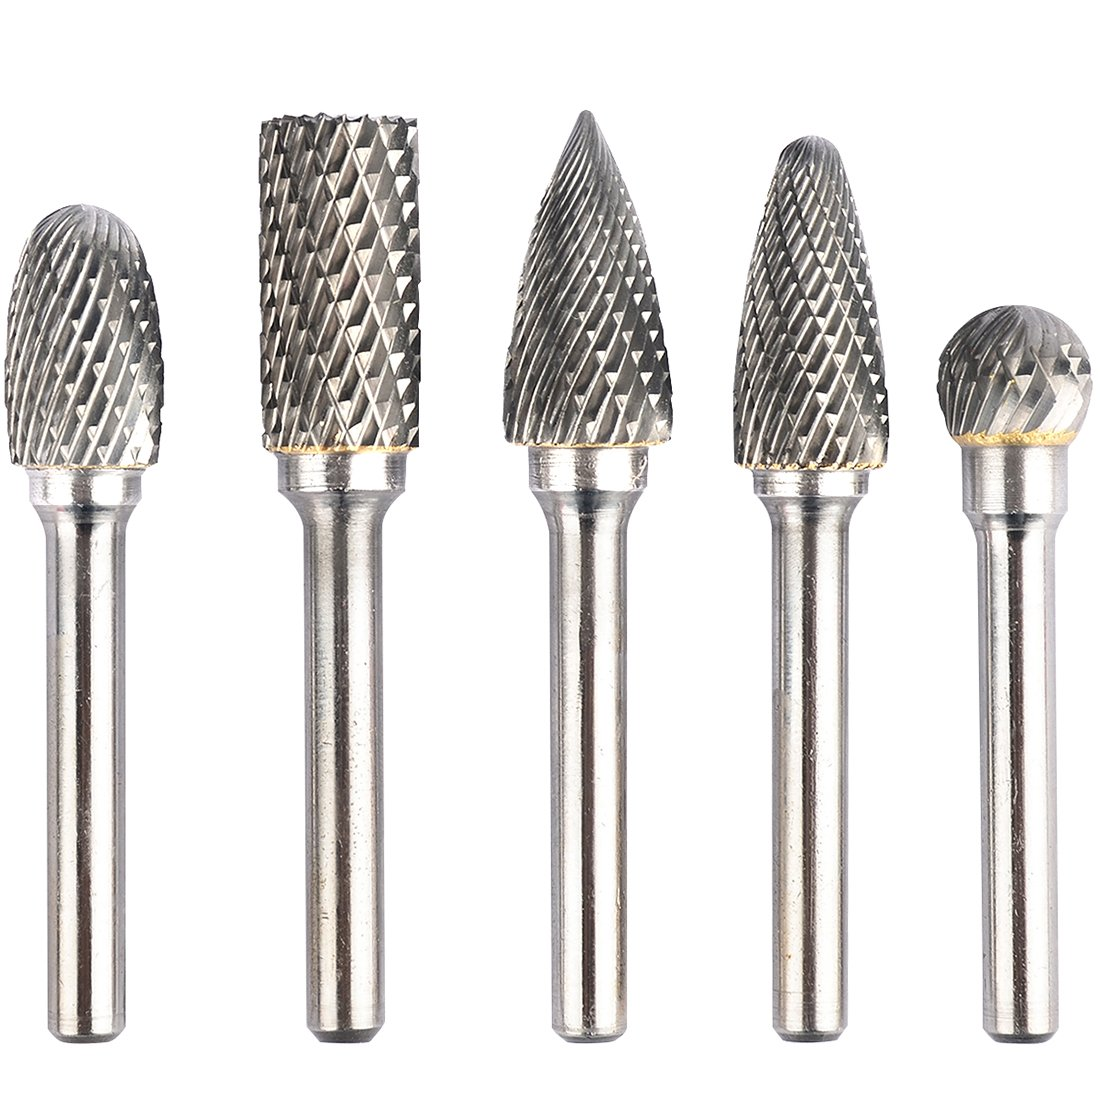 KOTVTM 5Pcs 12MM Head Tungsten Carbide Rotary Burr Set Die Grinder Bit 1/4-Inch Shank Grinder Drill File Rotary Burrs Cutting Burs Metal Polishing